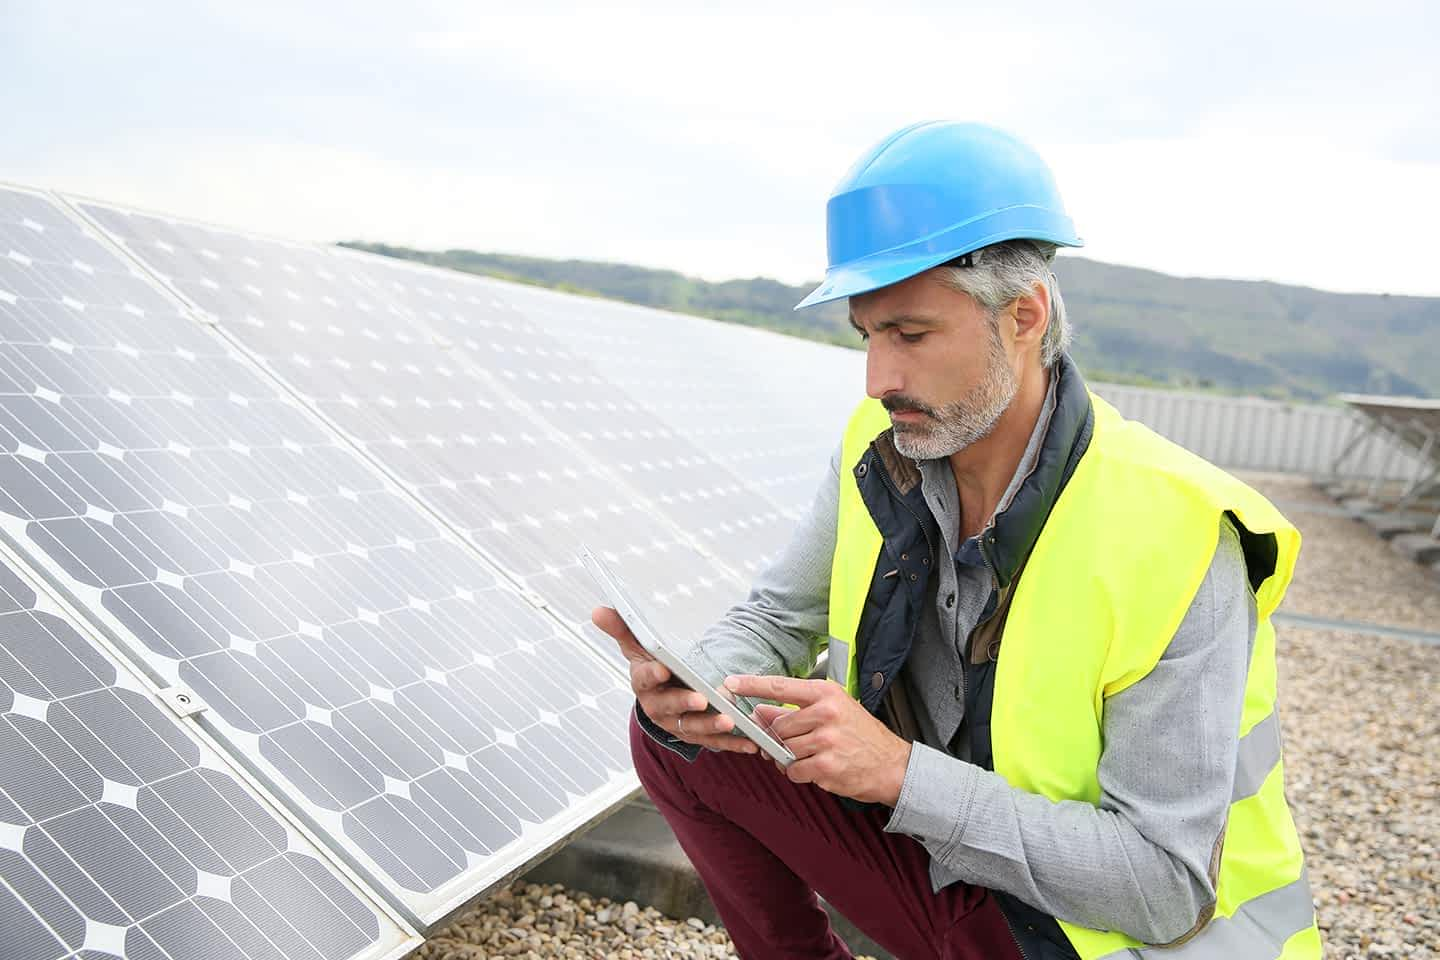 Solar Panel checks with forms 2 mobile